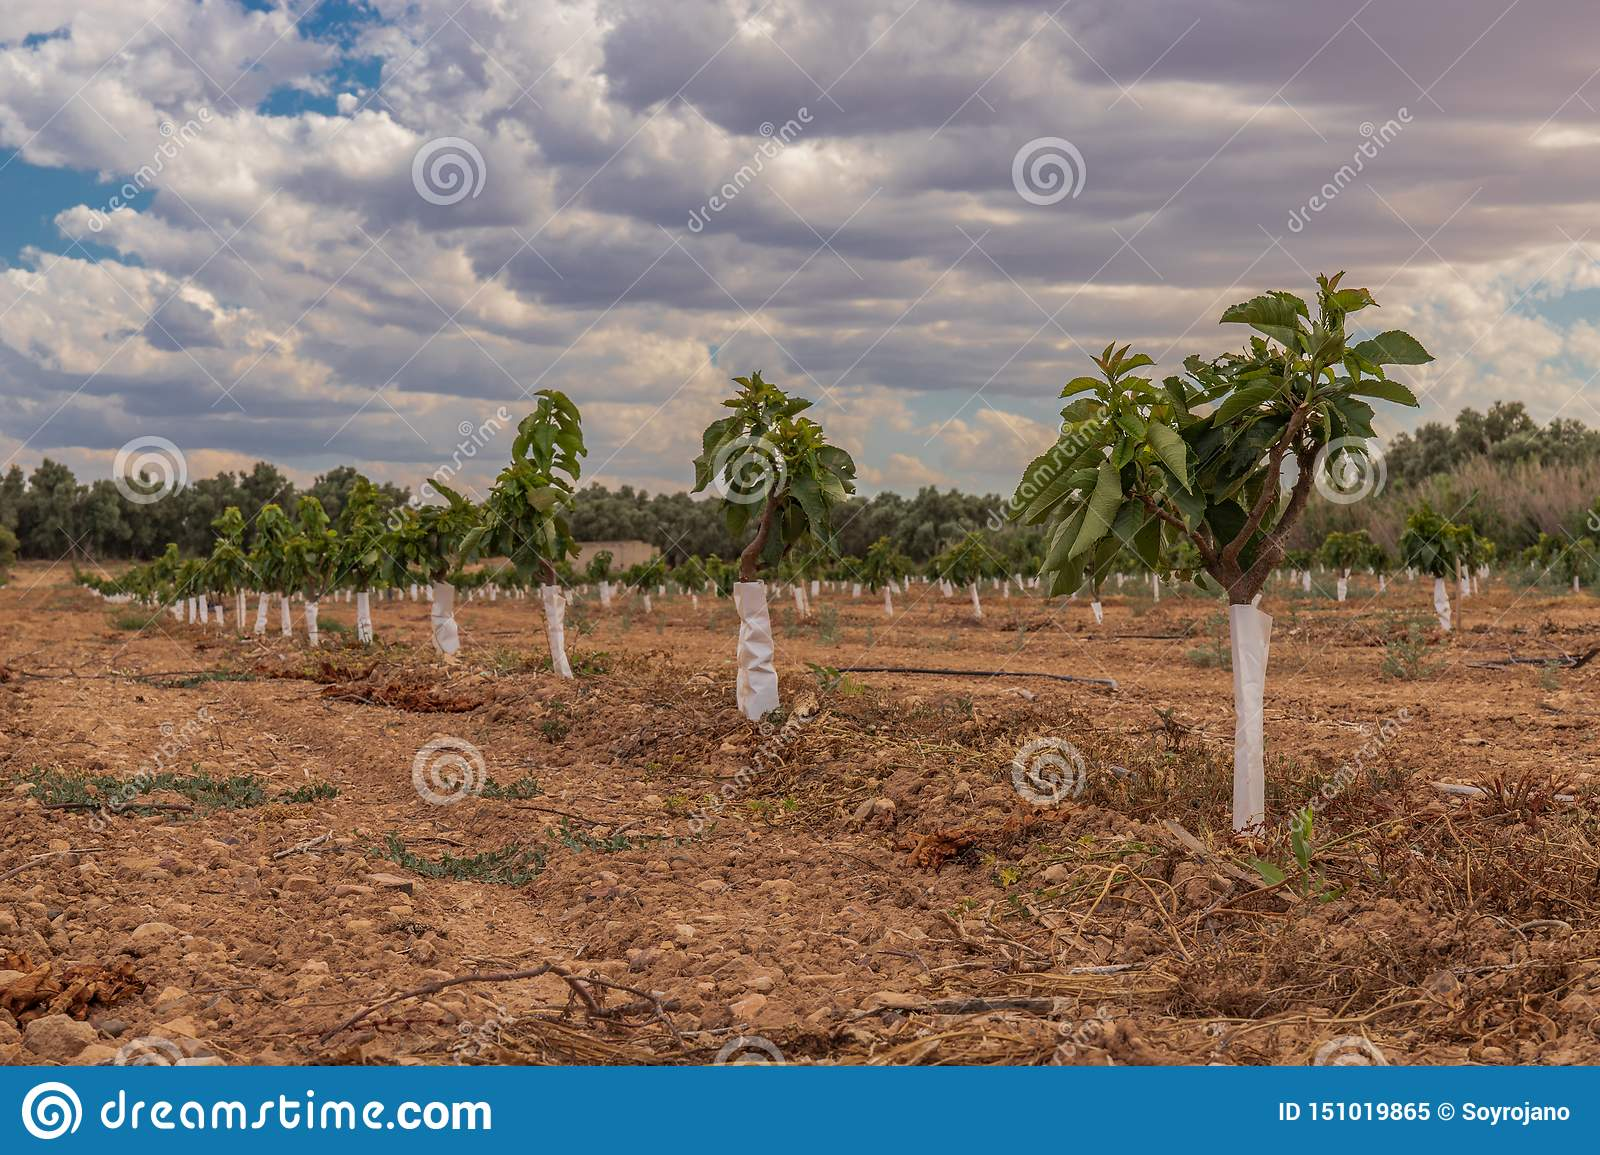 Cherry plantation small trees extensive agriculture